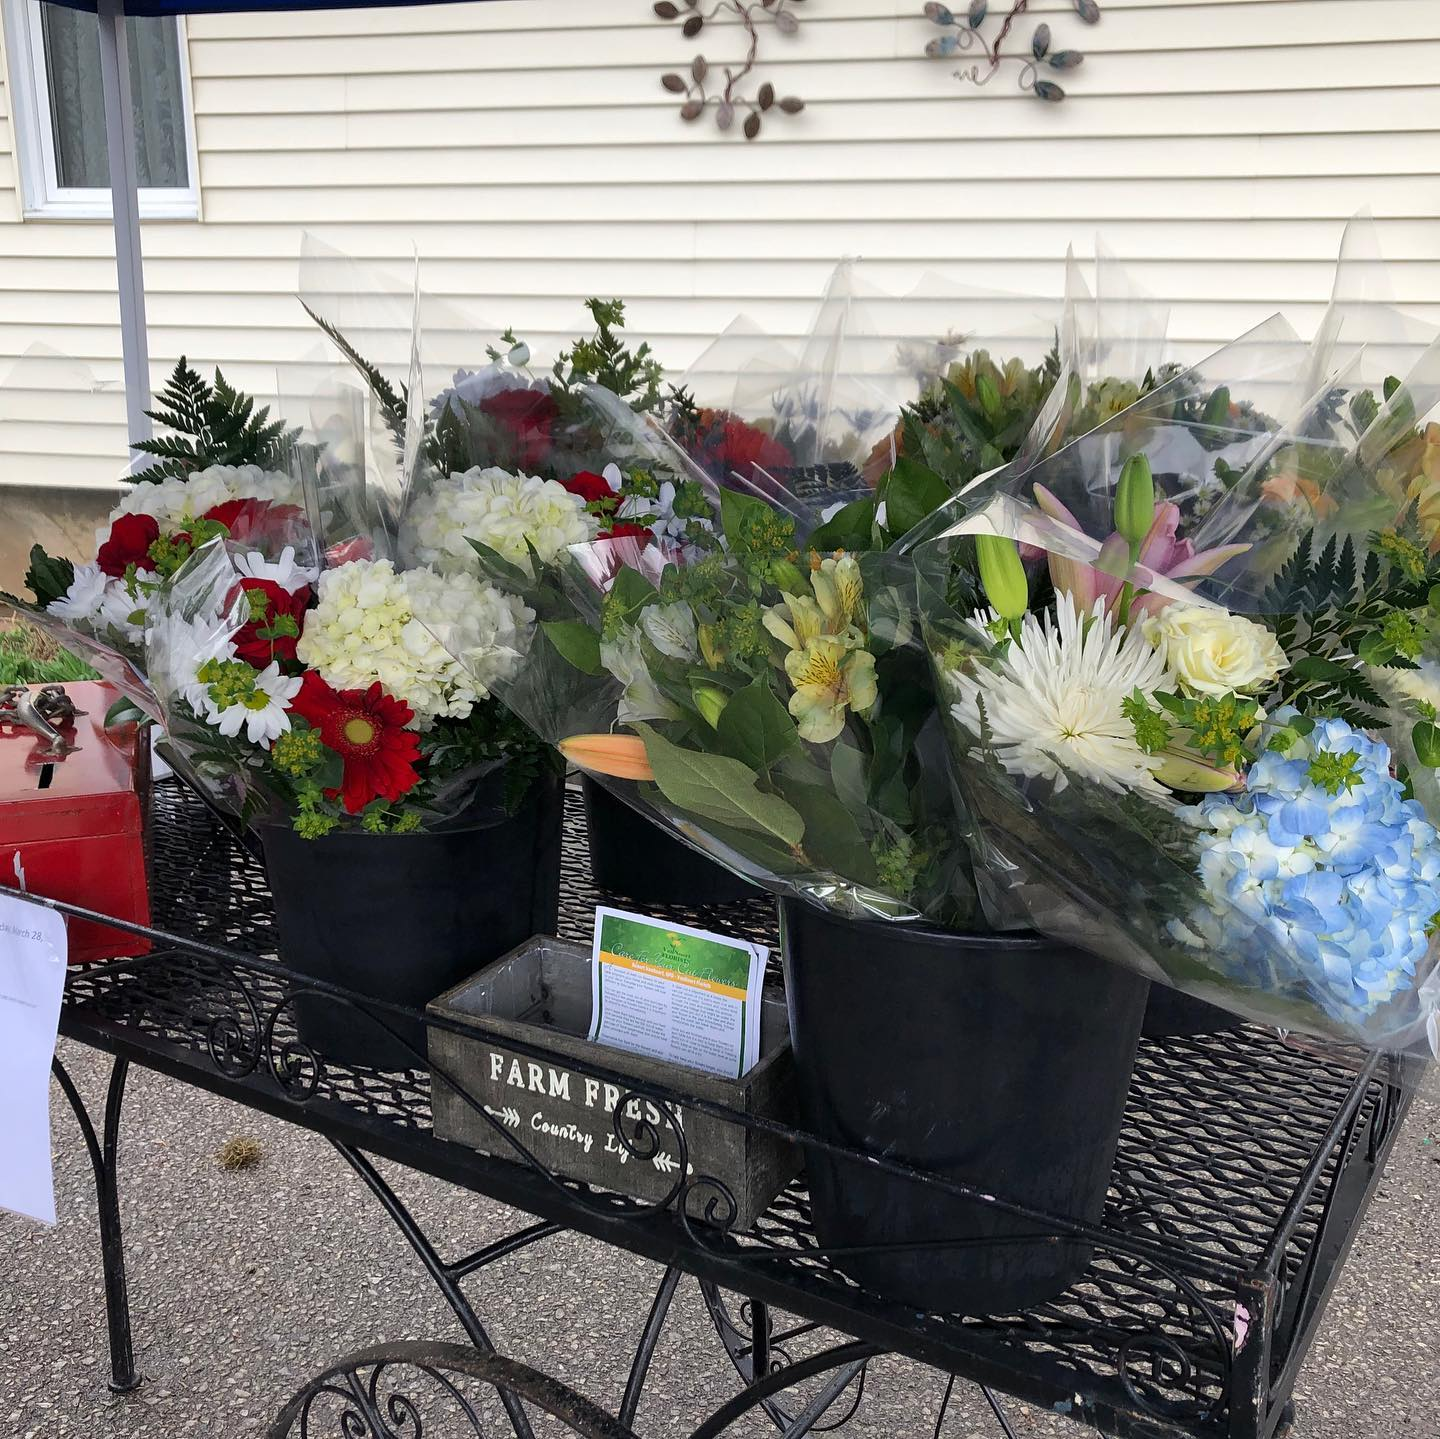 We All Need Floral Sunshine in Our Life – Assorted Bouquets $10 each at Van Noort Florists